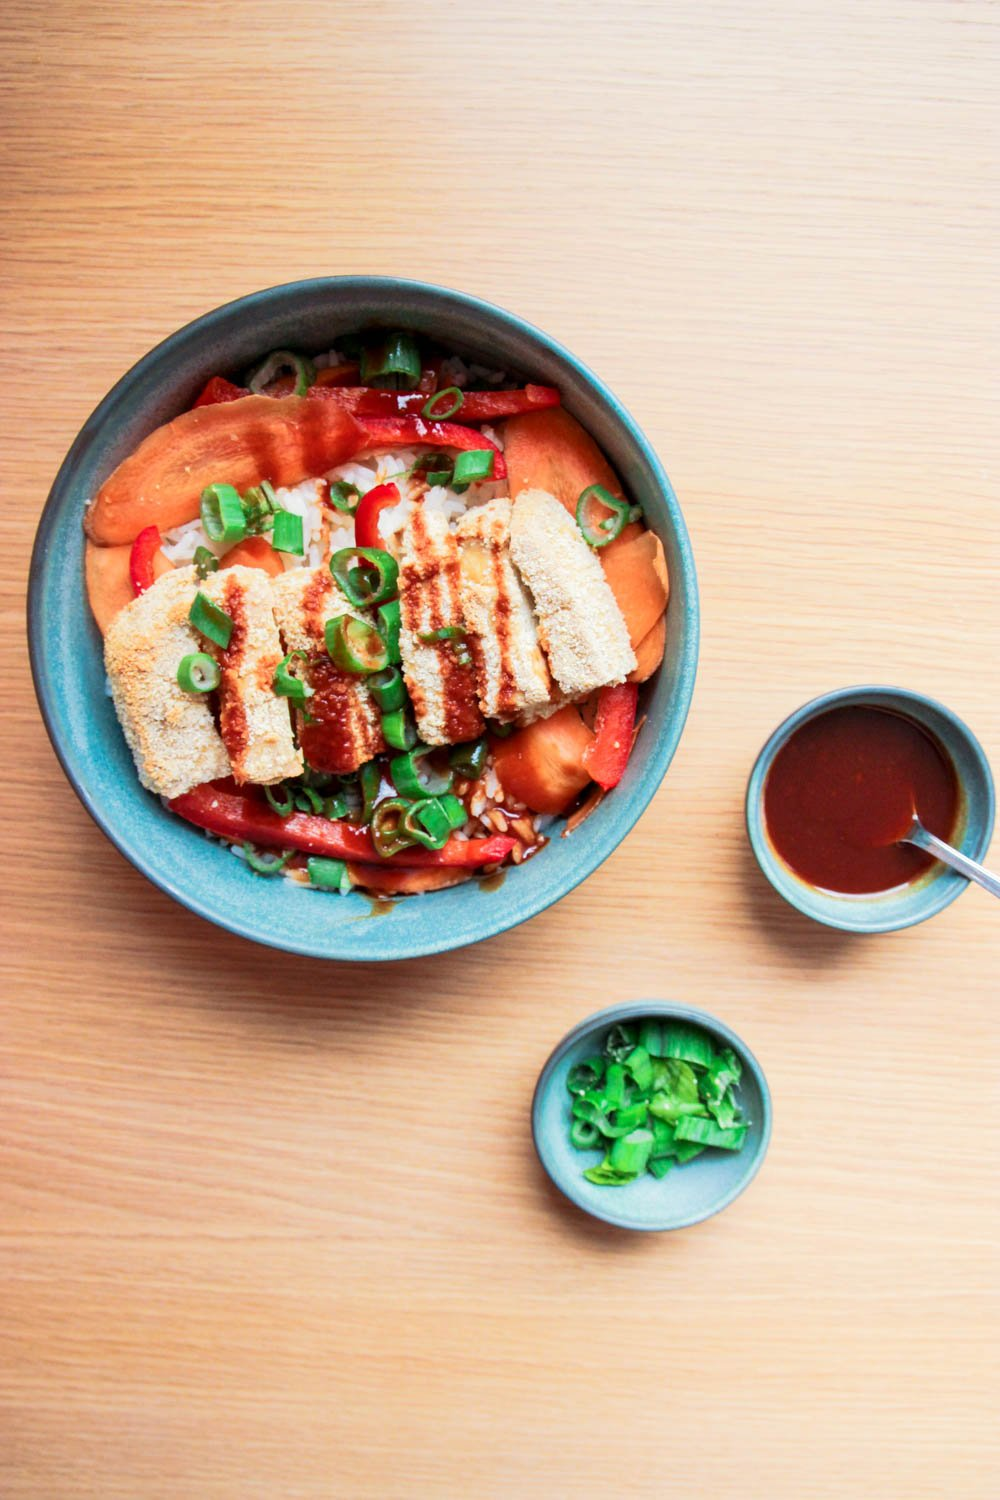 This picture shows the finished Japanese Tofu Katsu Bowl.